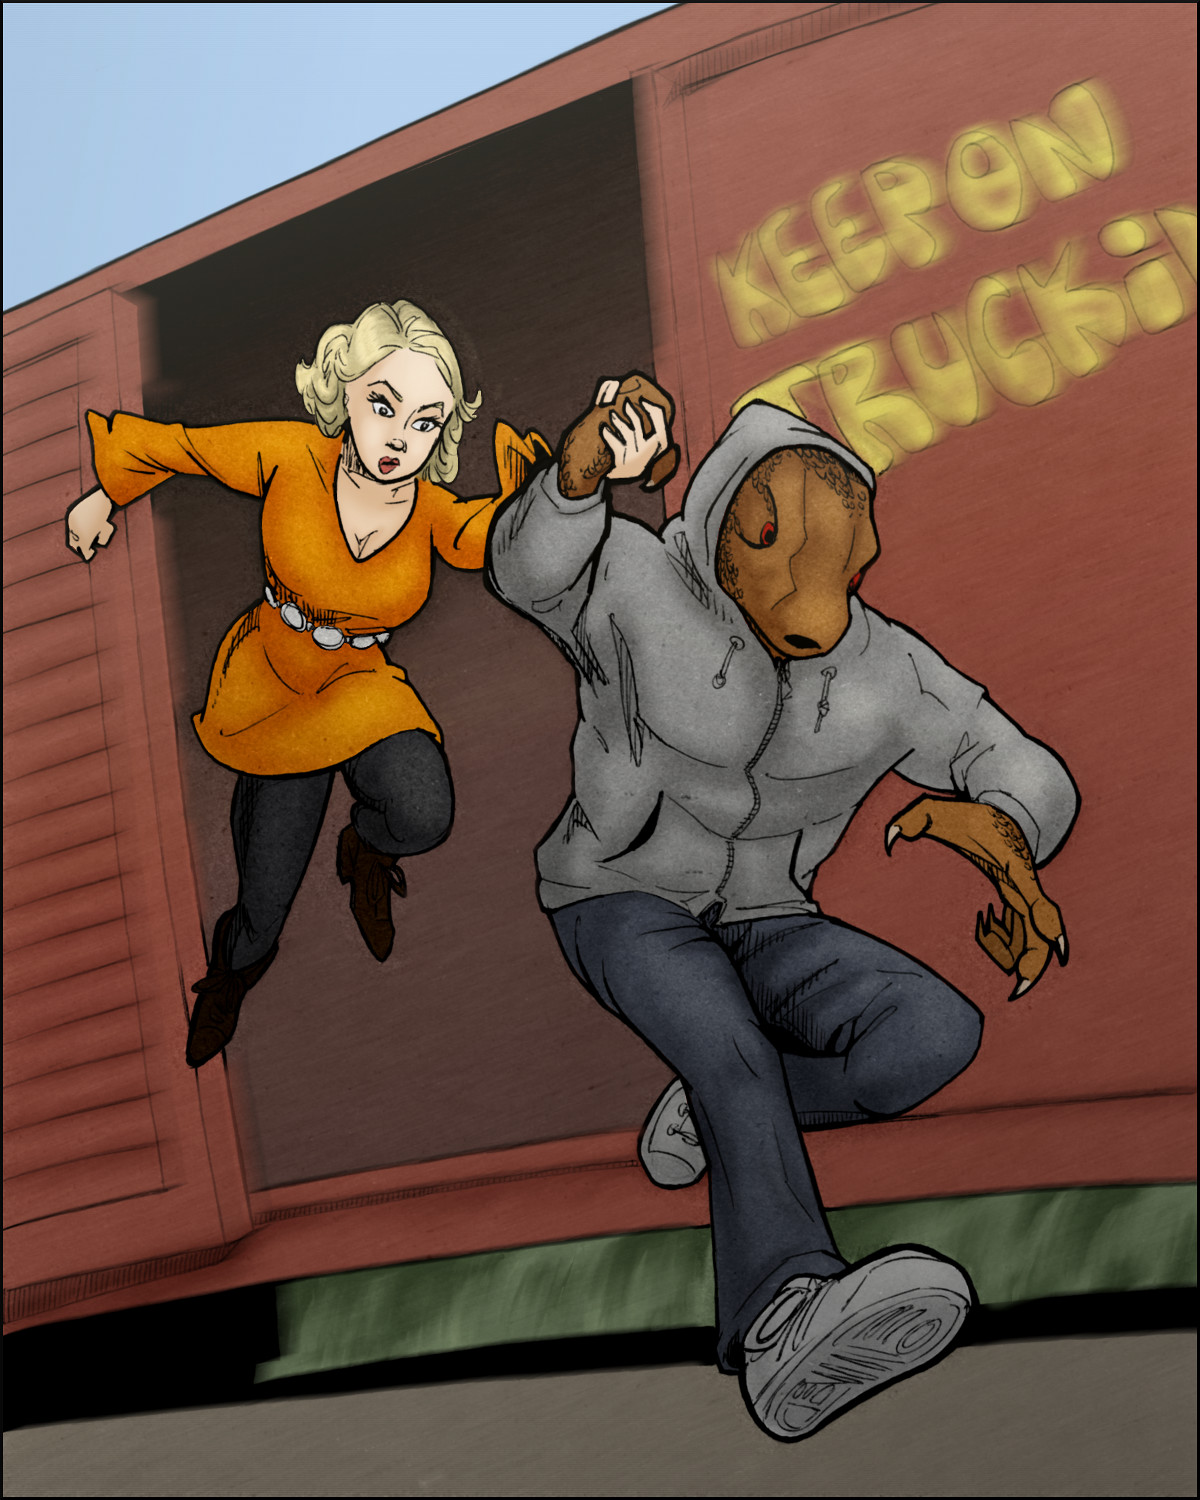 They make their leap from a moving train.